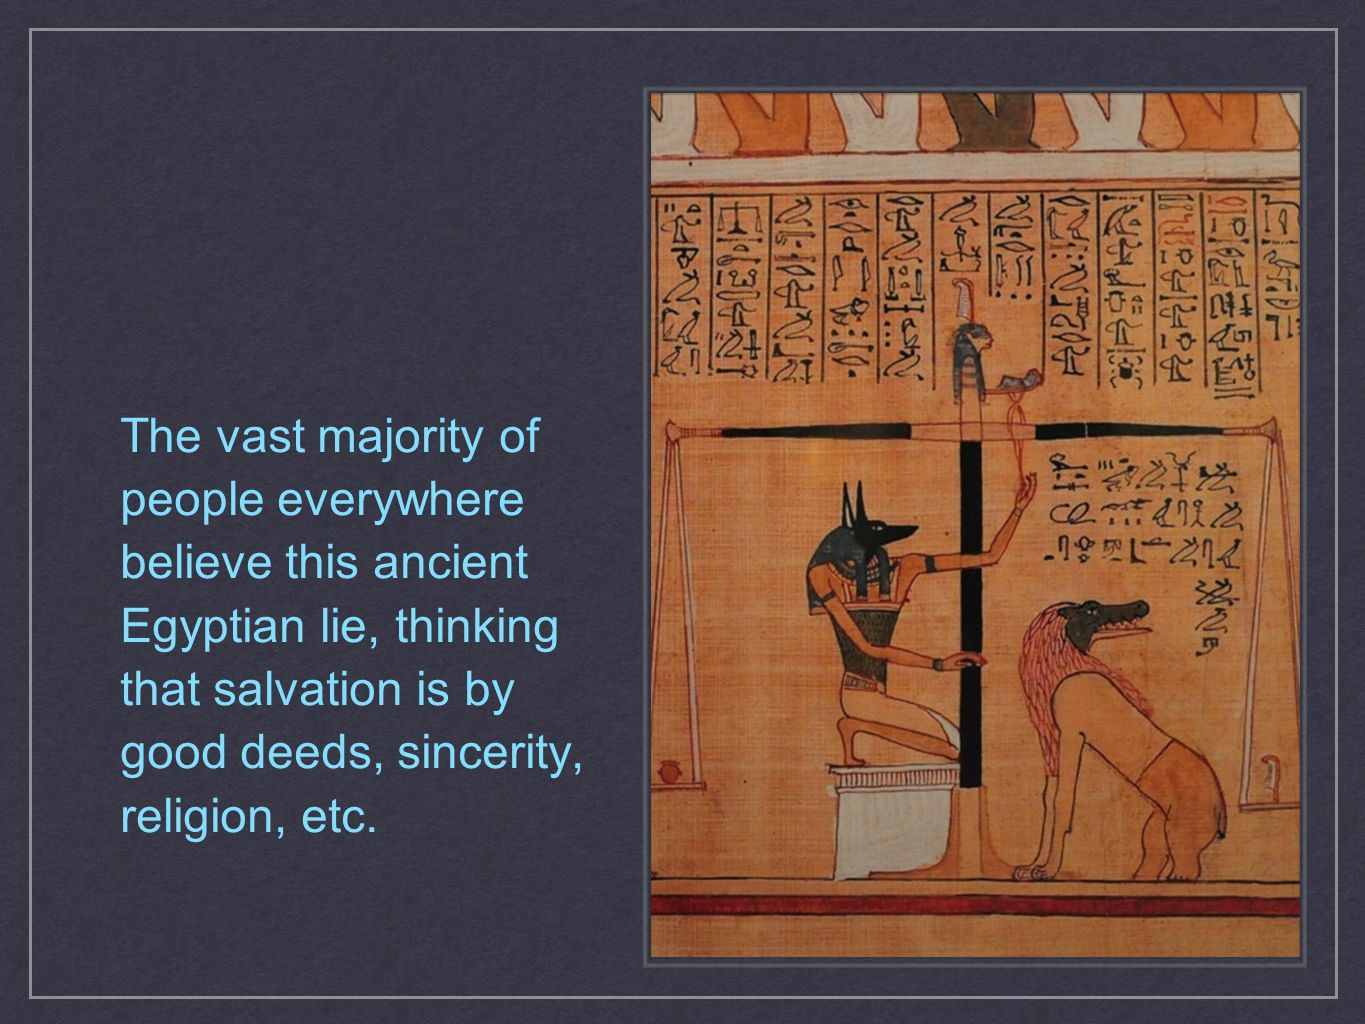 The vast majority of people everywhere believe this ancient Egyptian lie, thinking that salvation is by good deeds, sincerity, religion, etc.